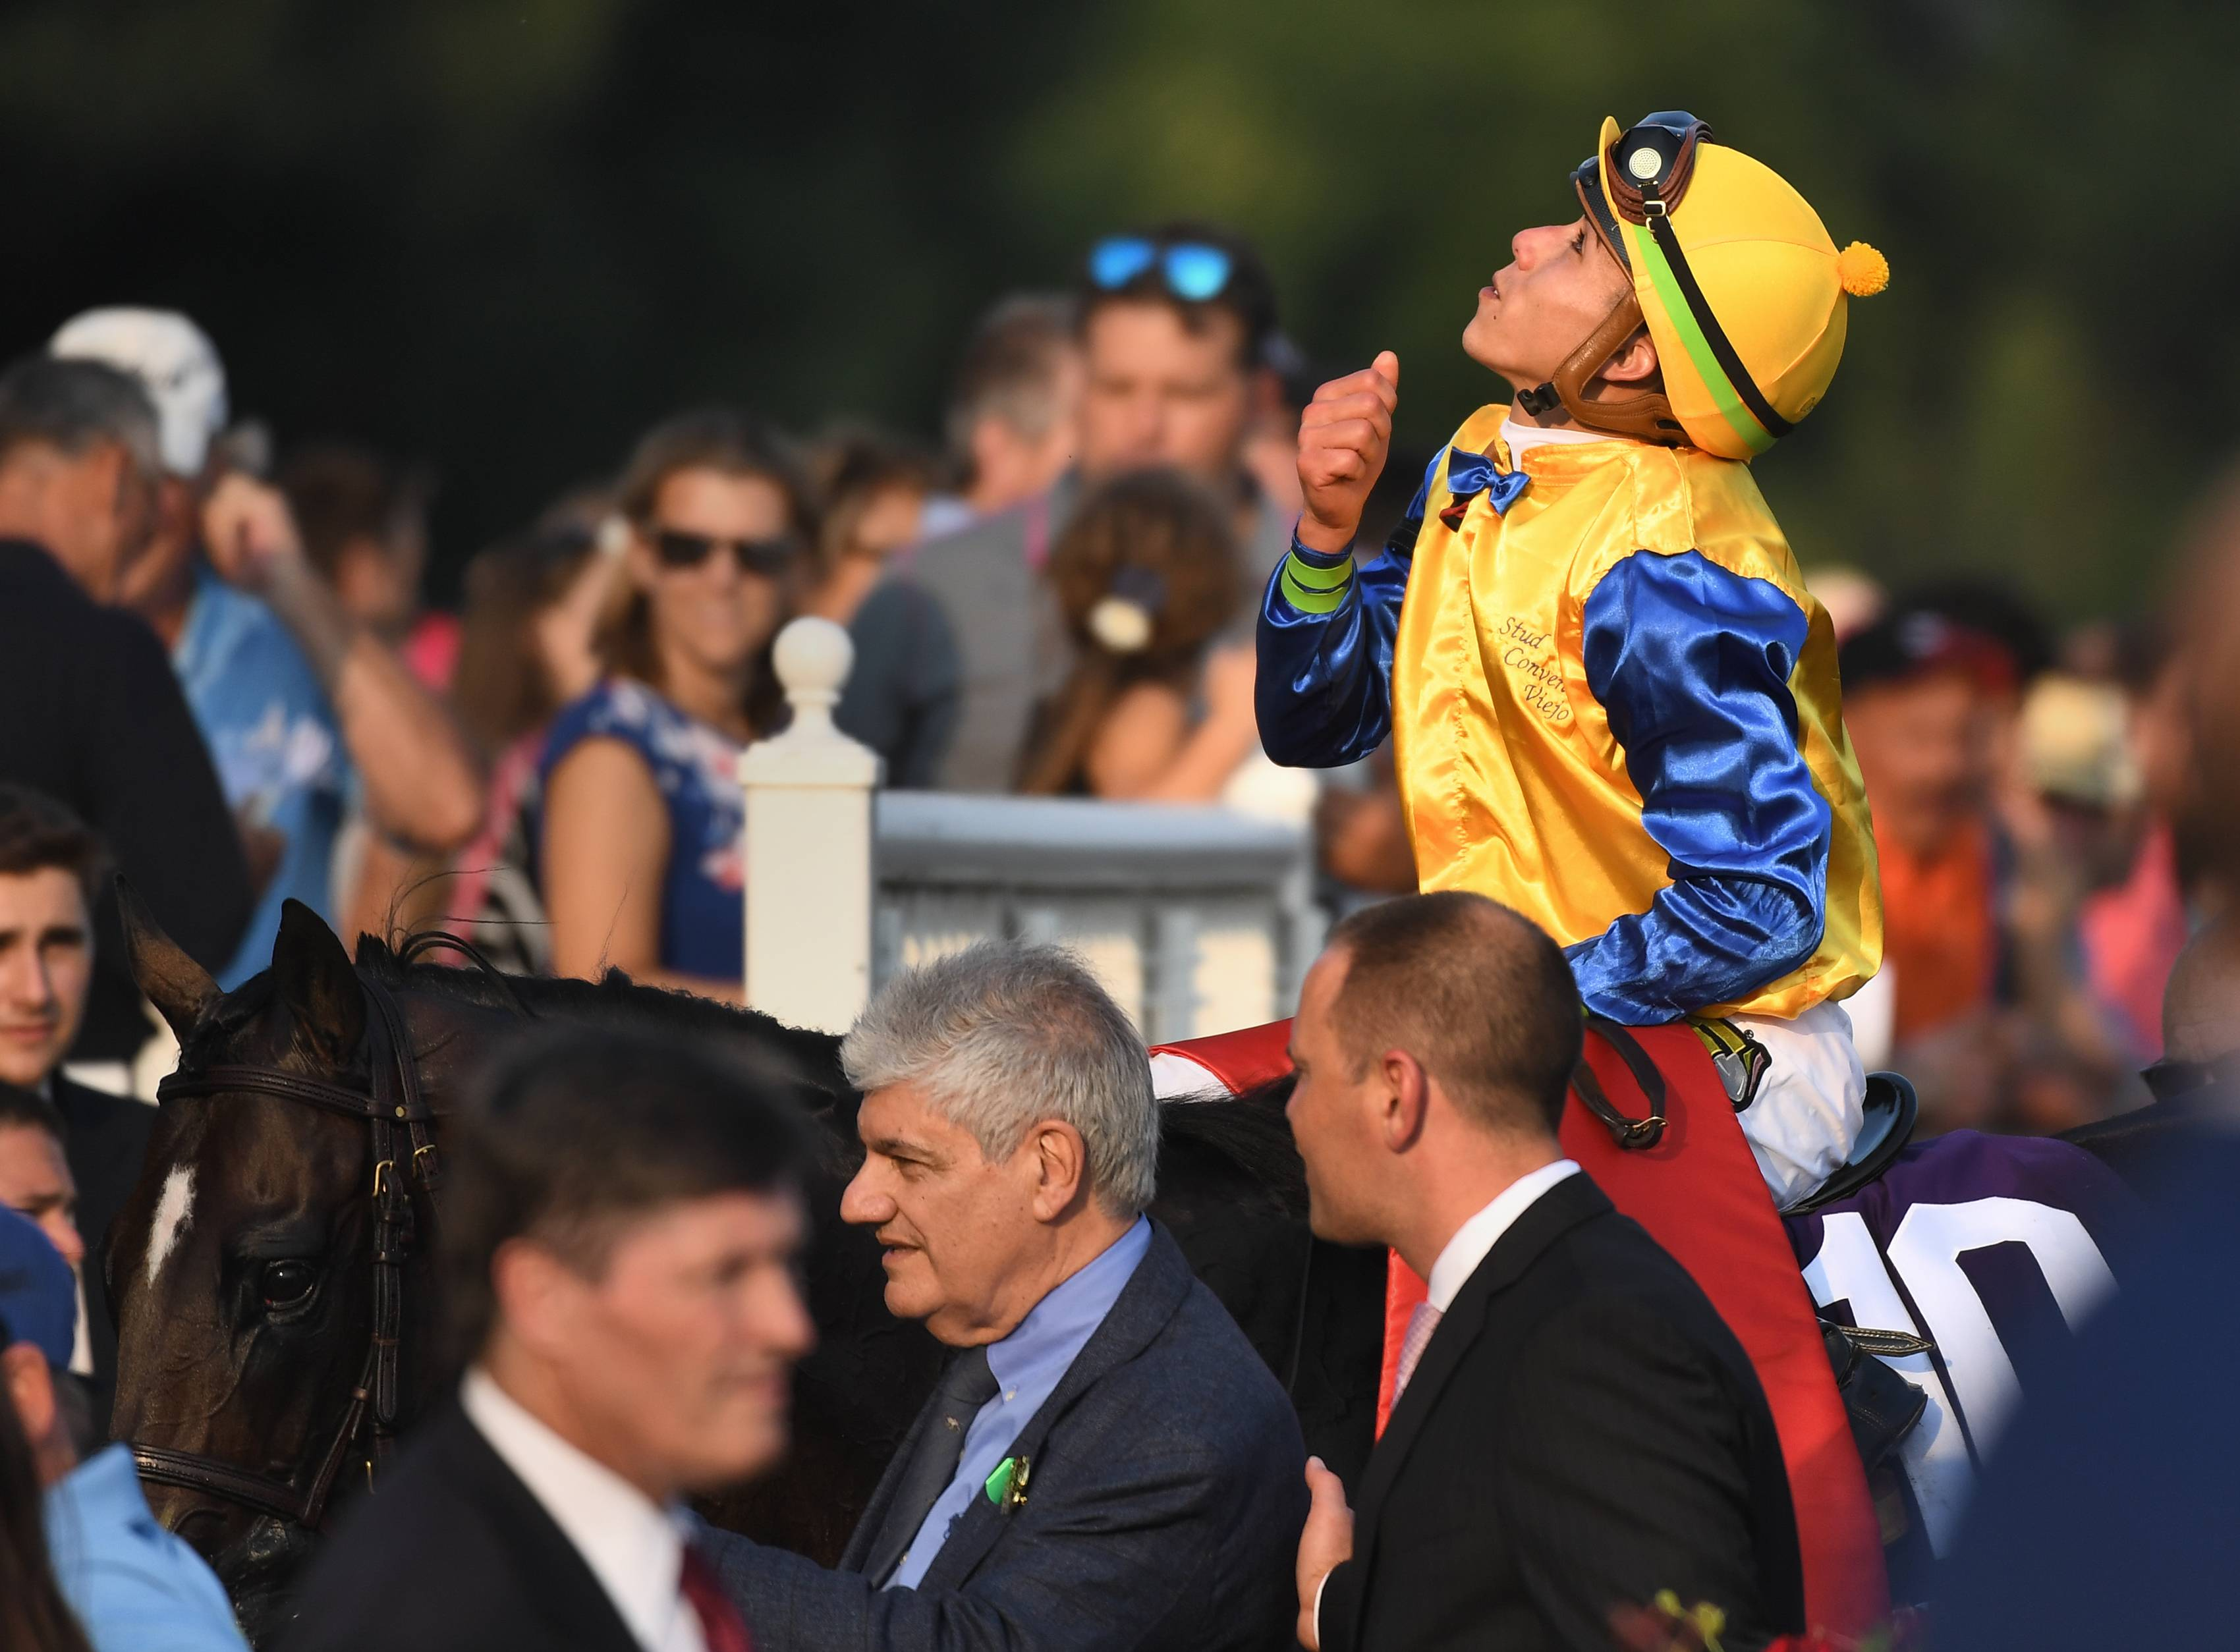 Jockey Irad Ortiz, Jr. looks up as he and Robert Bruce are led to the Winner's Circle after winning the 36th Arlington Million Day at Arlington Park in Arlington Heights Saturday.